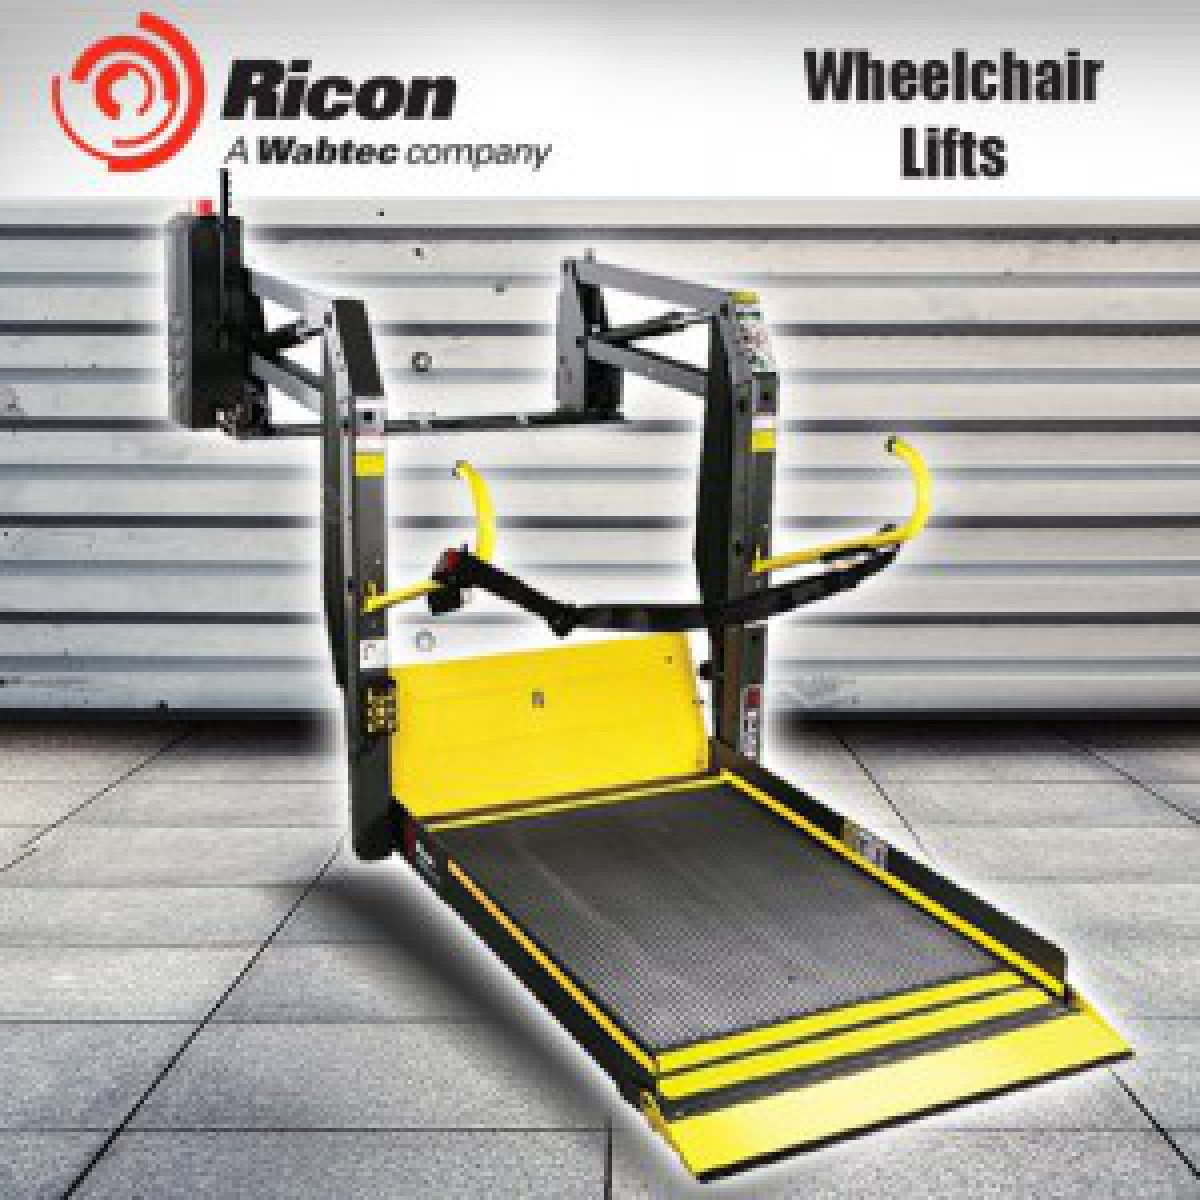 wheelchair equipment chair covers for events ramps lifts hand controls vans full size platform